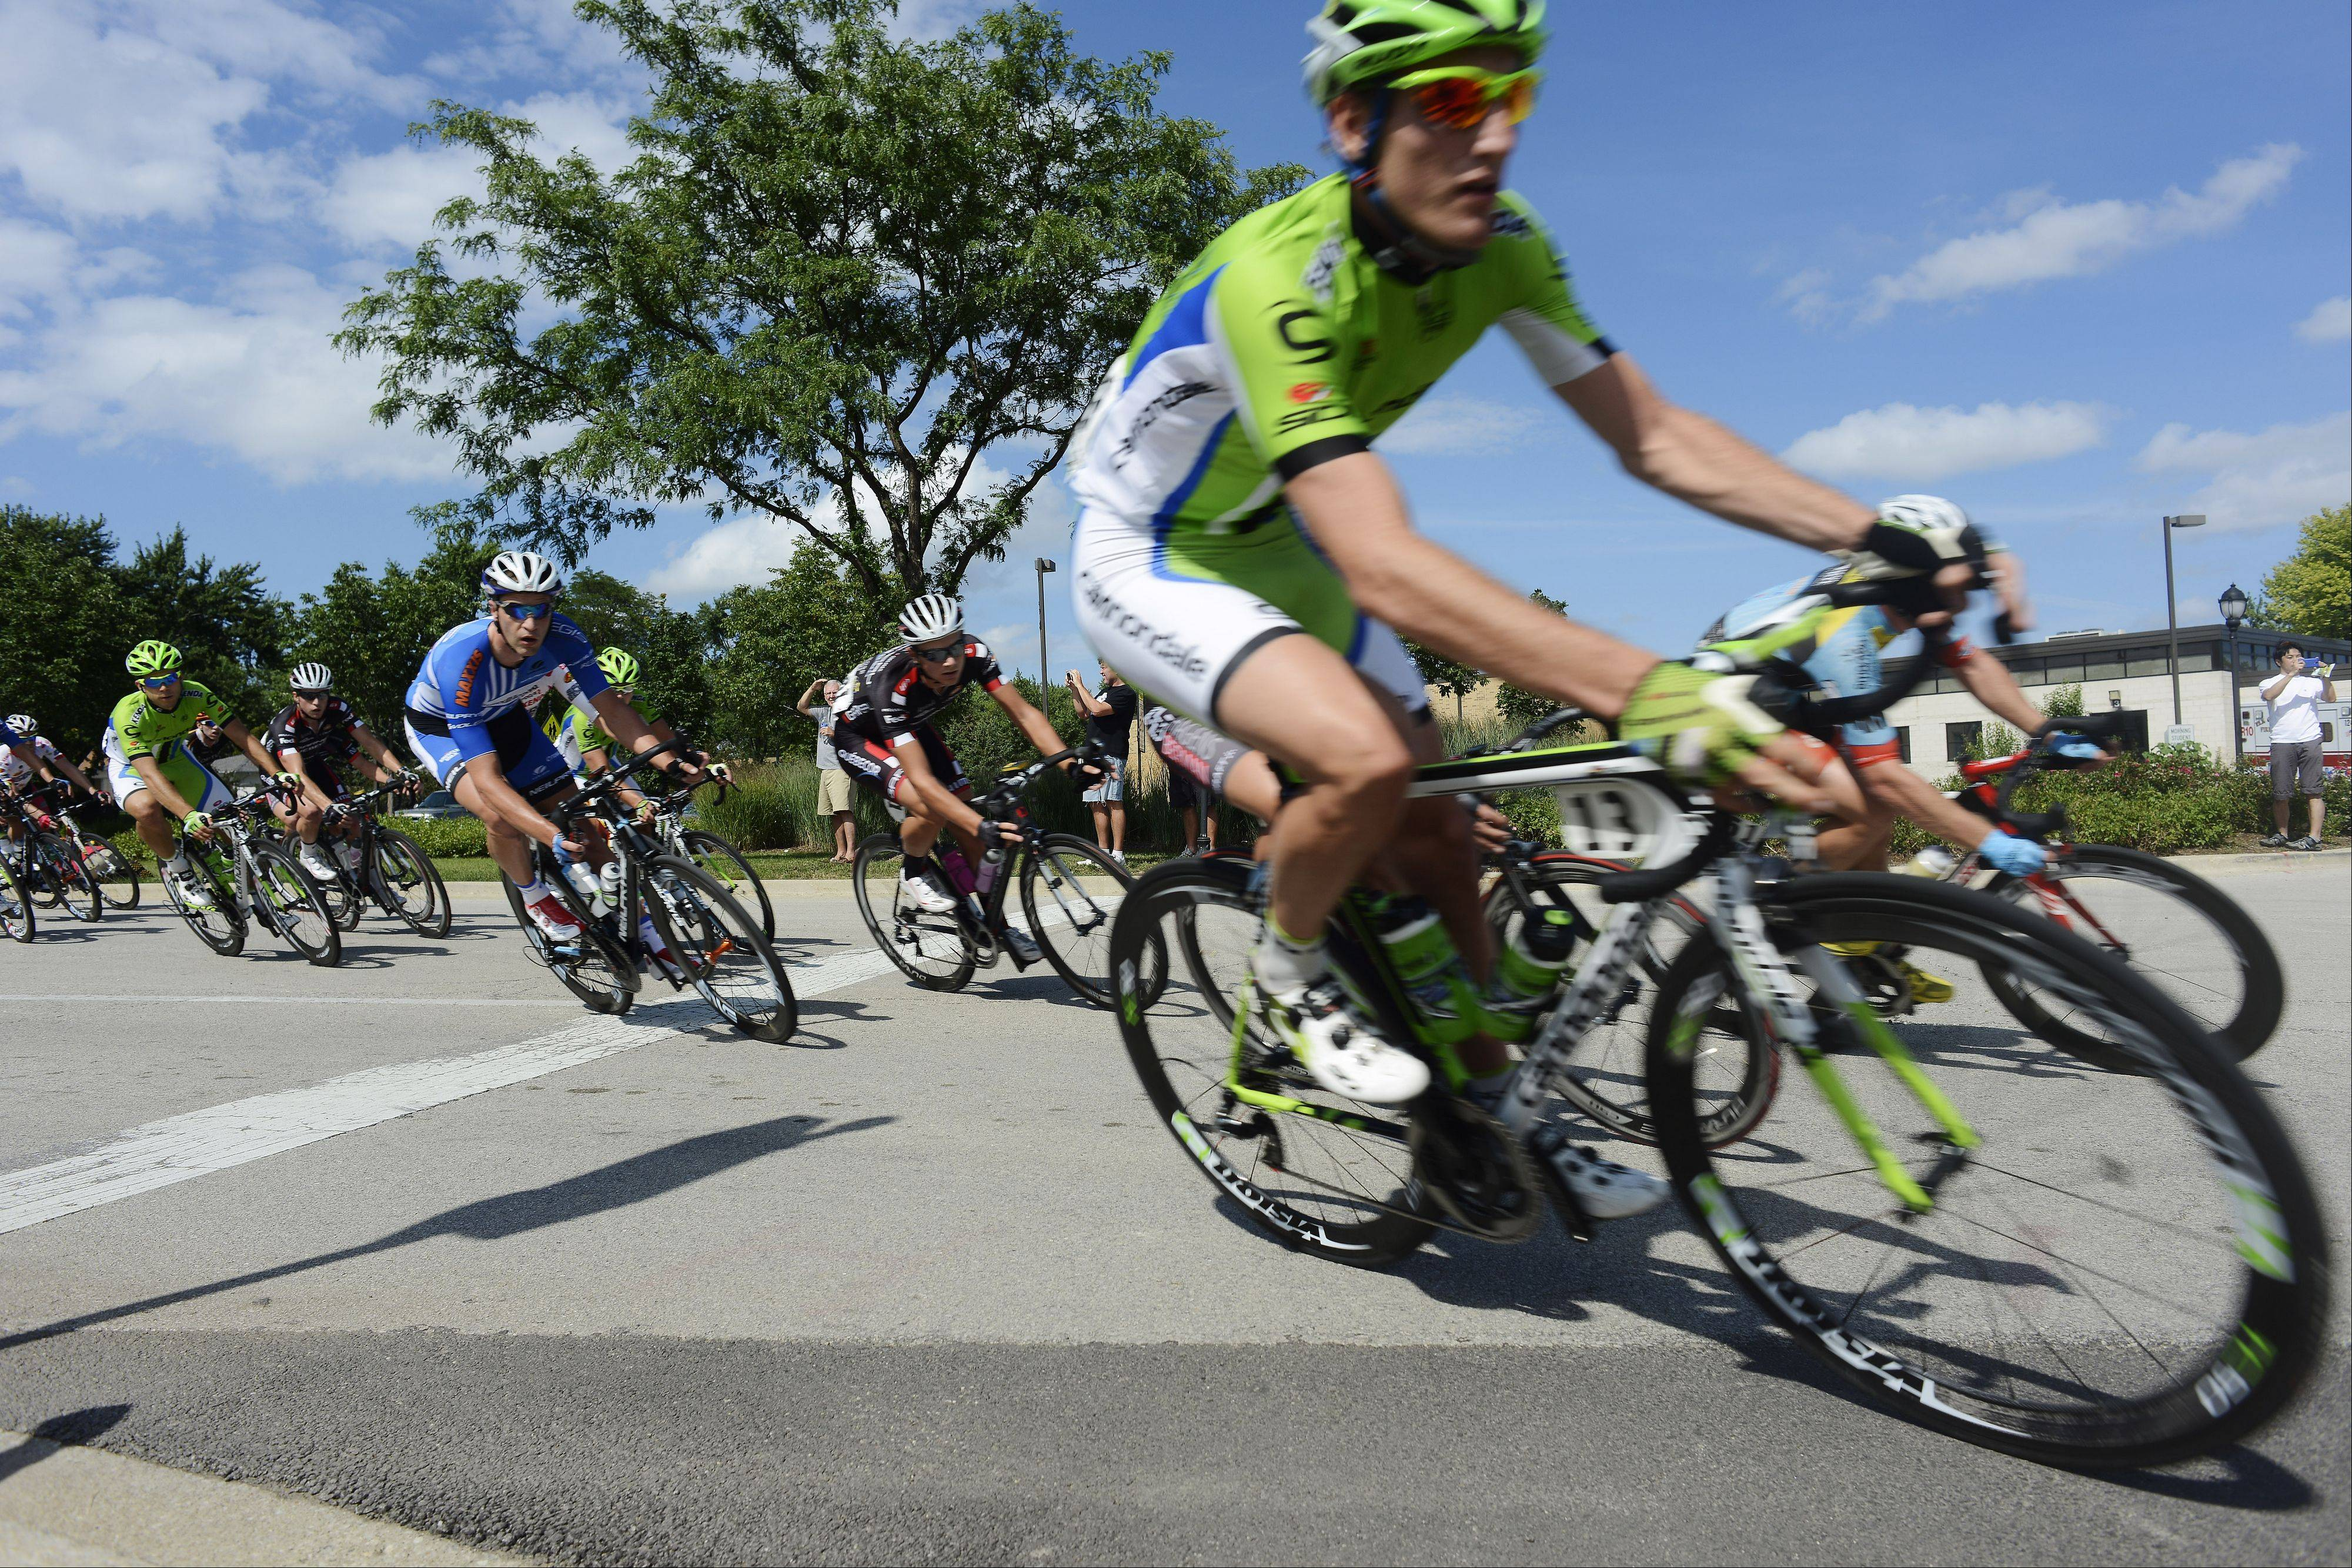 Cyclists compete Sunday in the Gullo International Pro Men Circuit Race, Stage 3, during the Tour of Elk Grove.